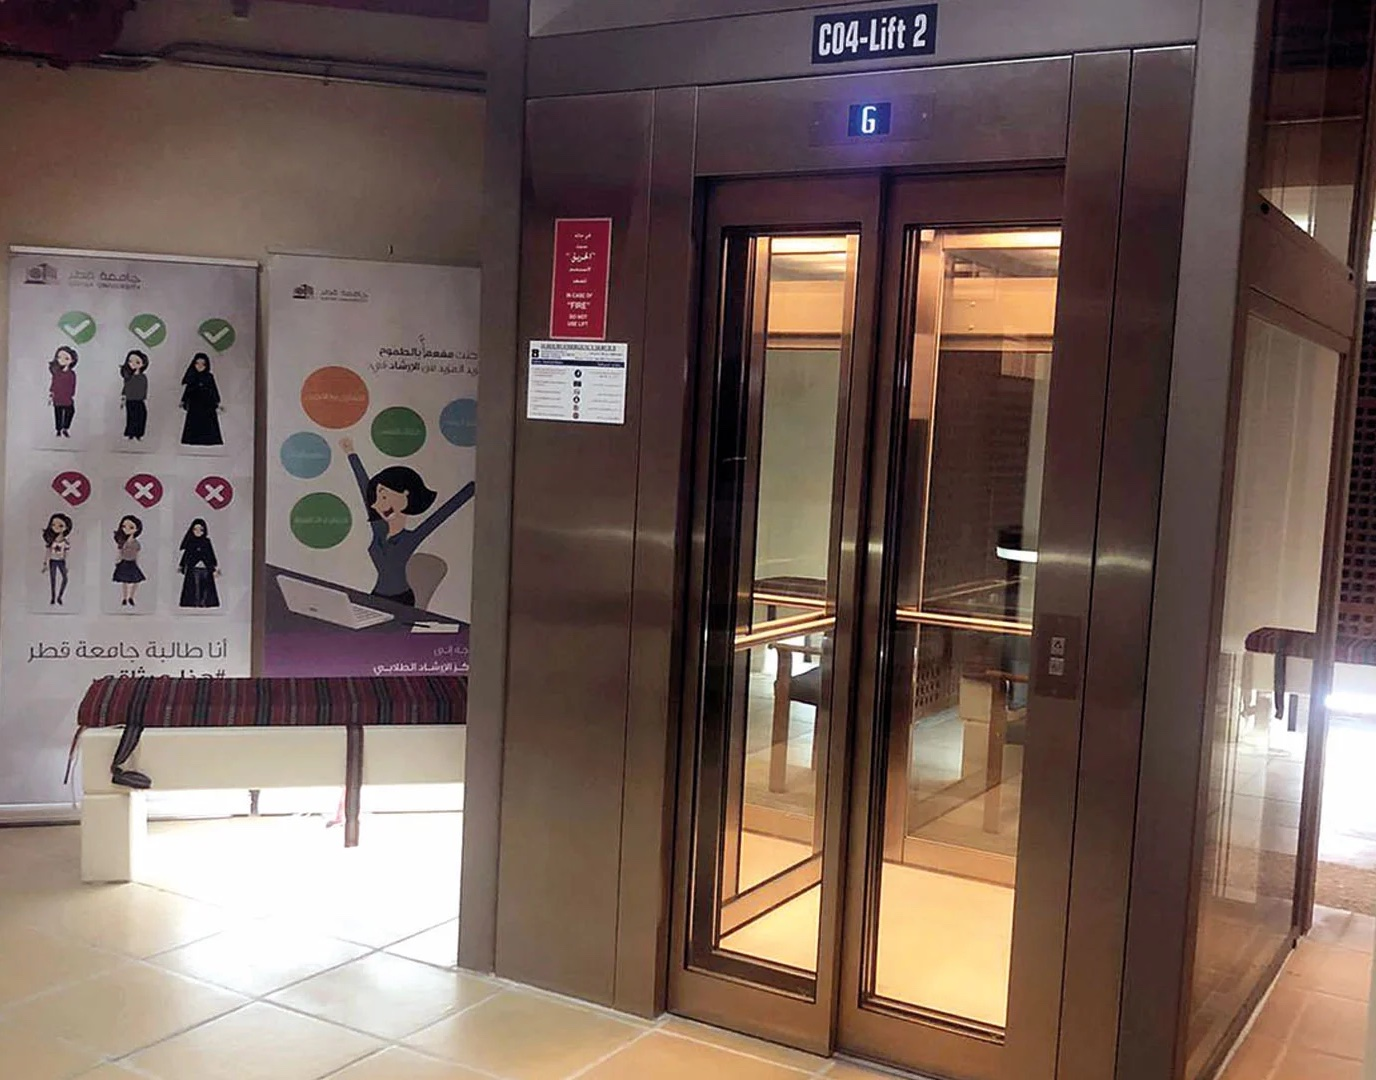 Installing Elevators for people with disabilities at the university